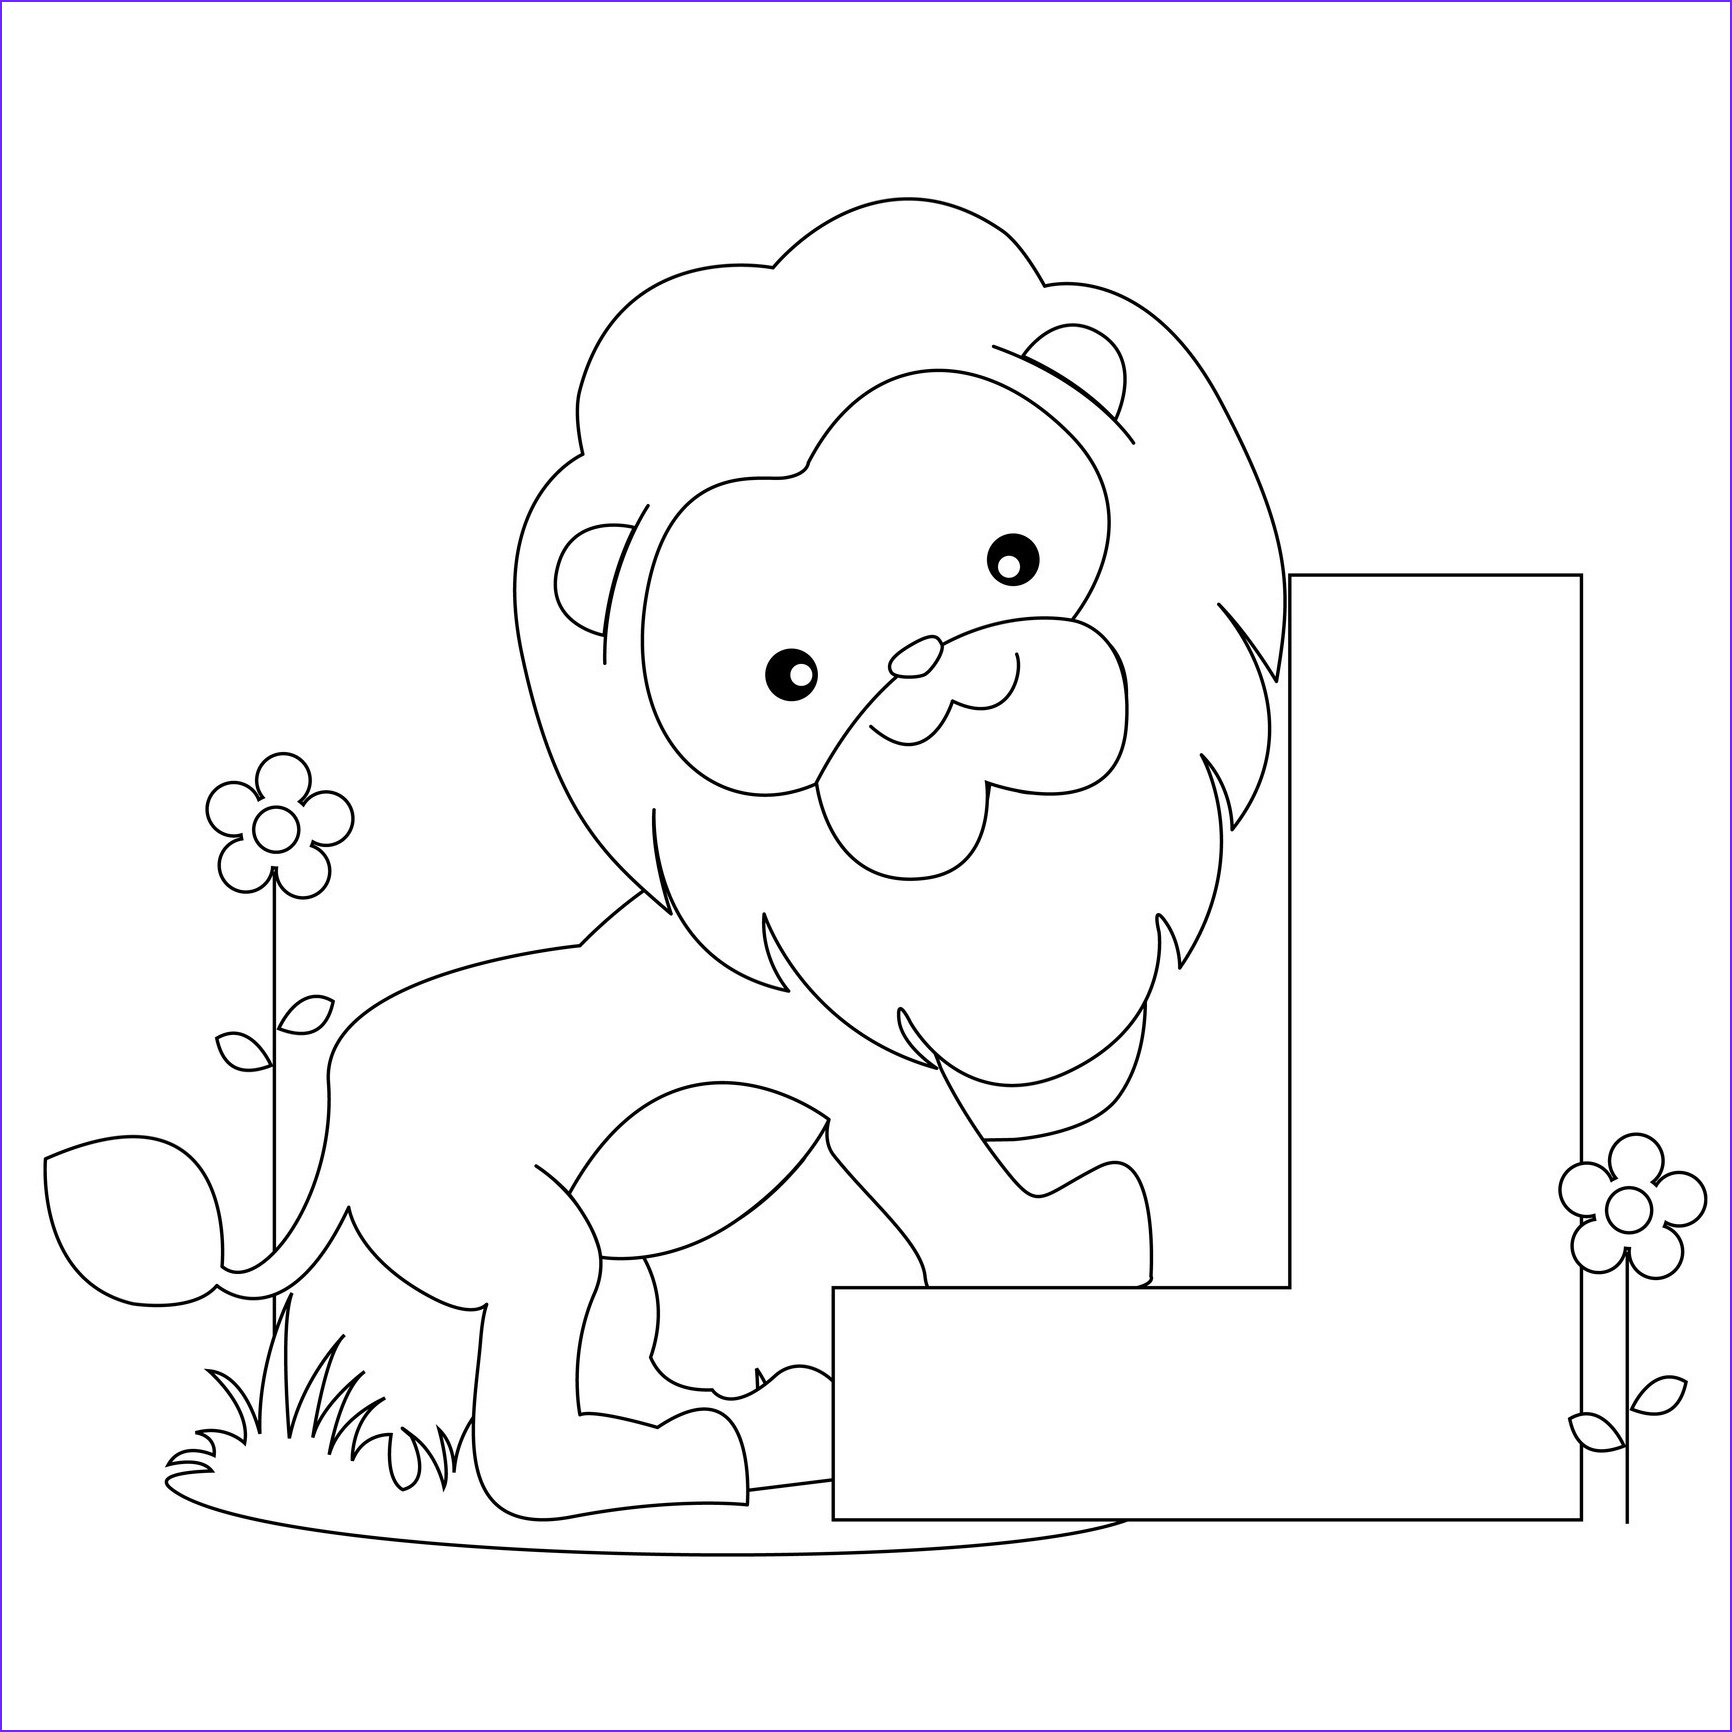 Alphabets Coloring Sheets New Gallery Free Printable Alphabet Coloring Pages for Kids Best